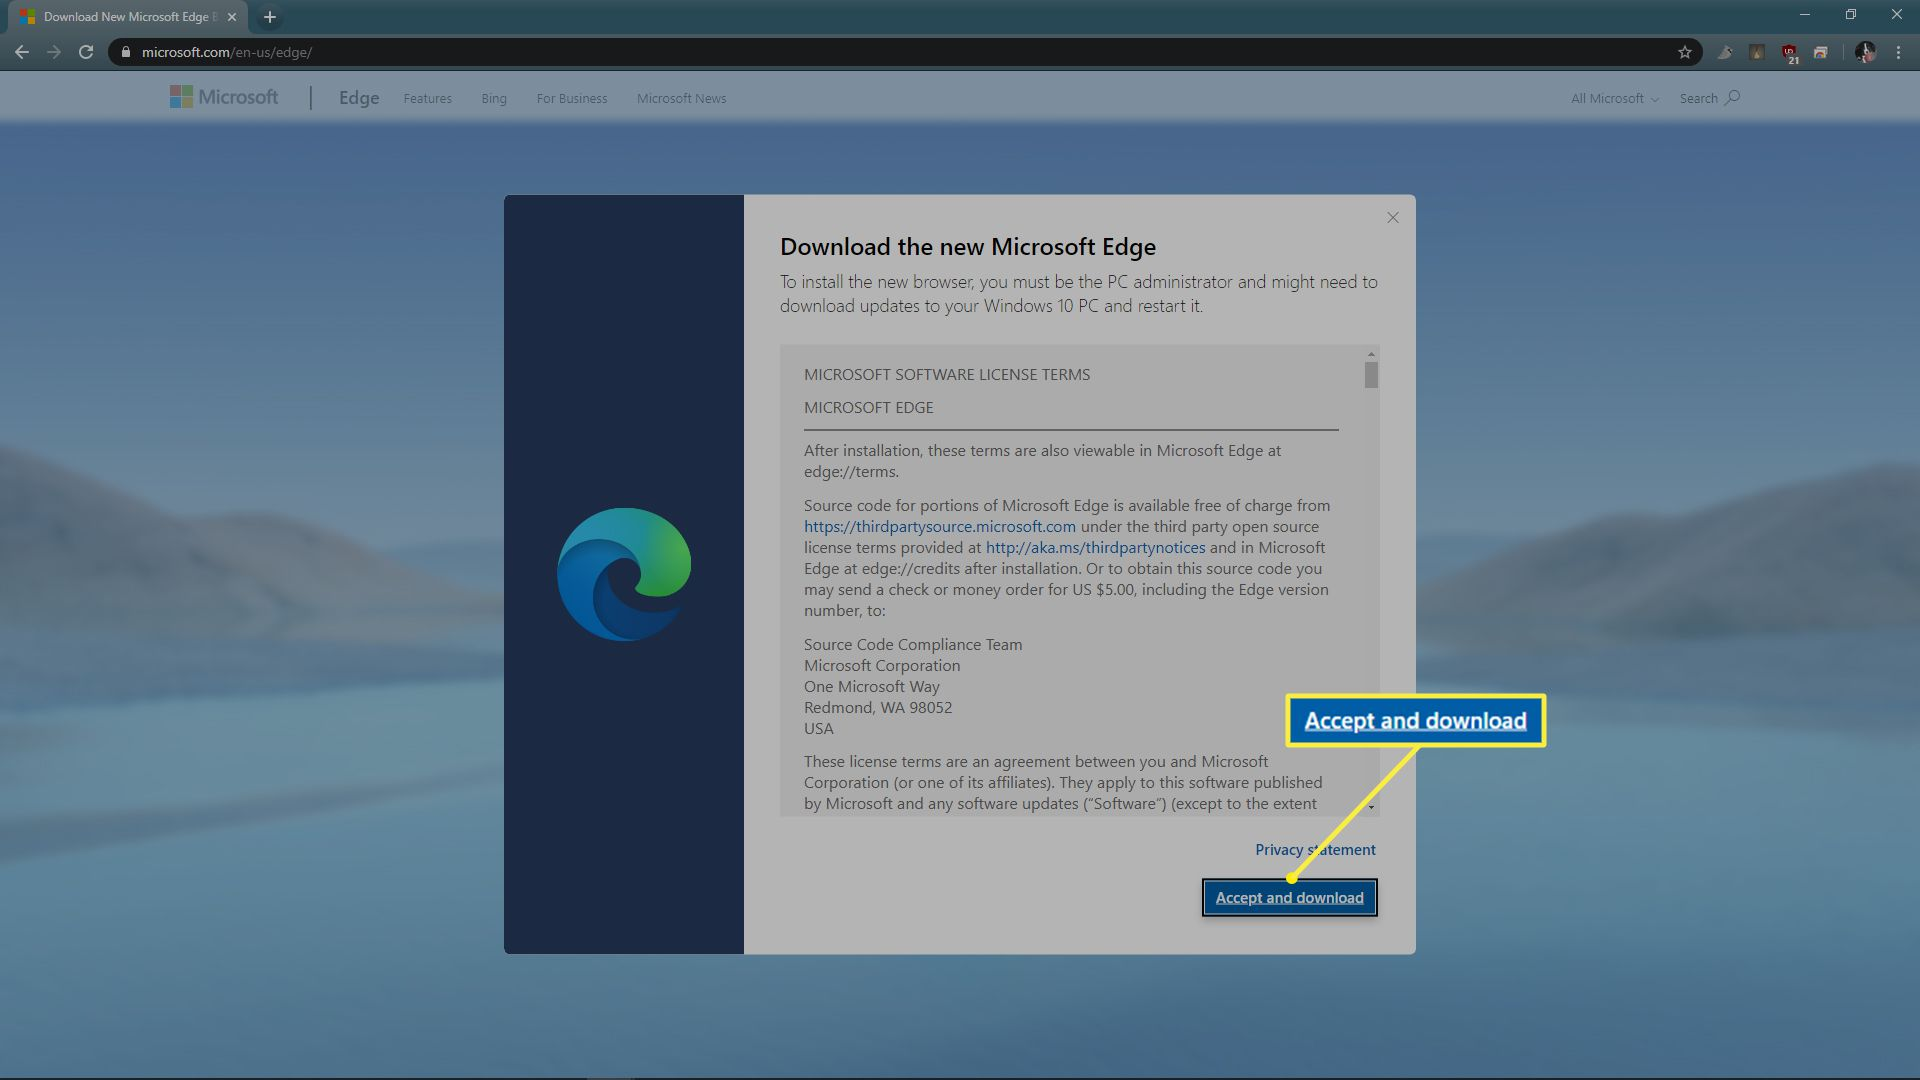 Microsoft Edge software license terms with Accept and download highlighted